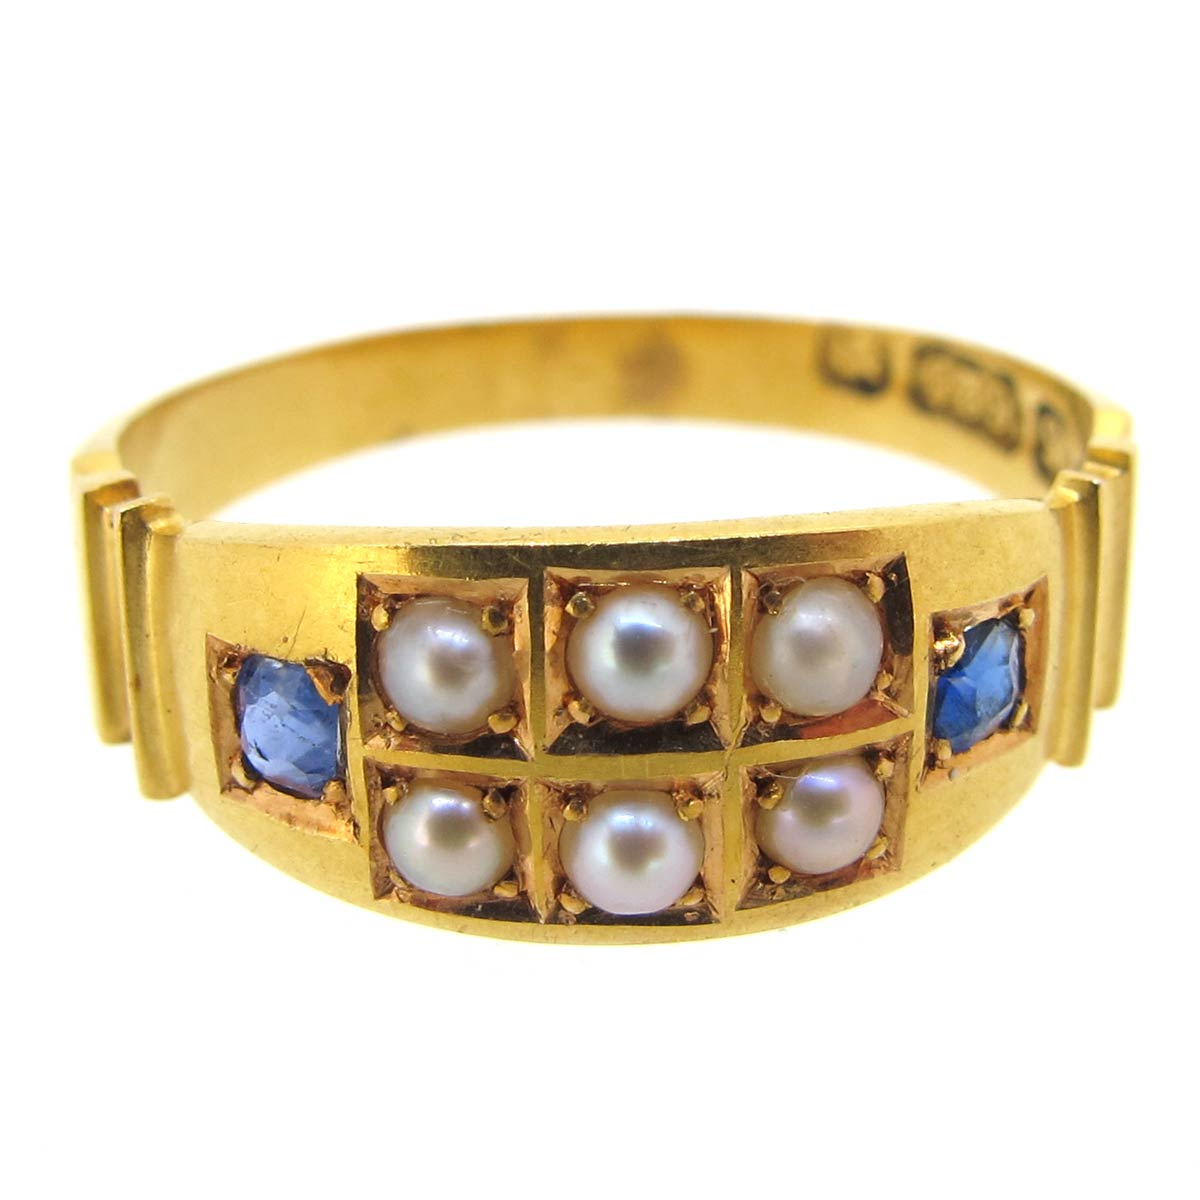 Antique Gold, Pearl & Sapphire Ring